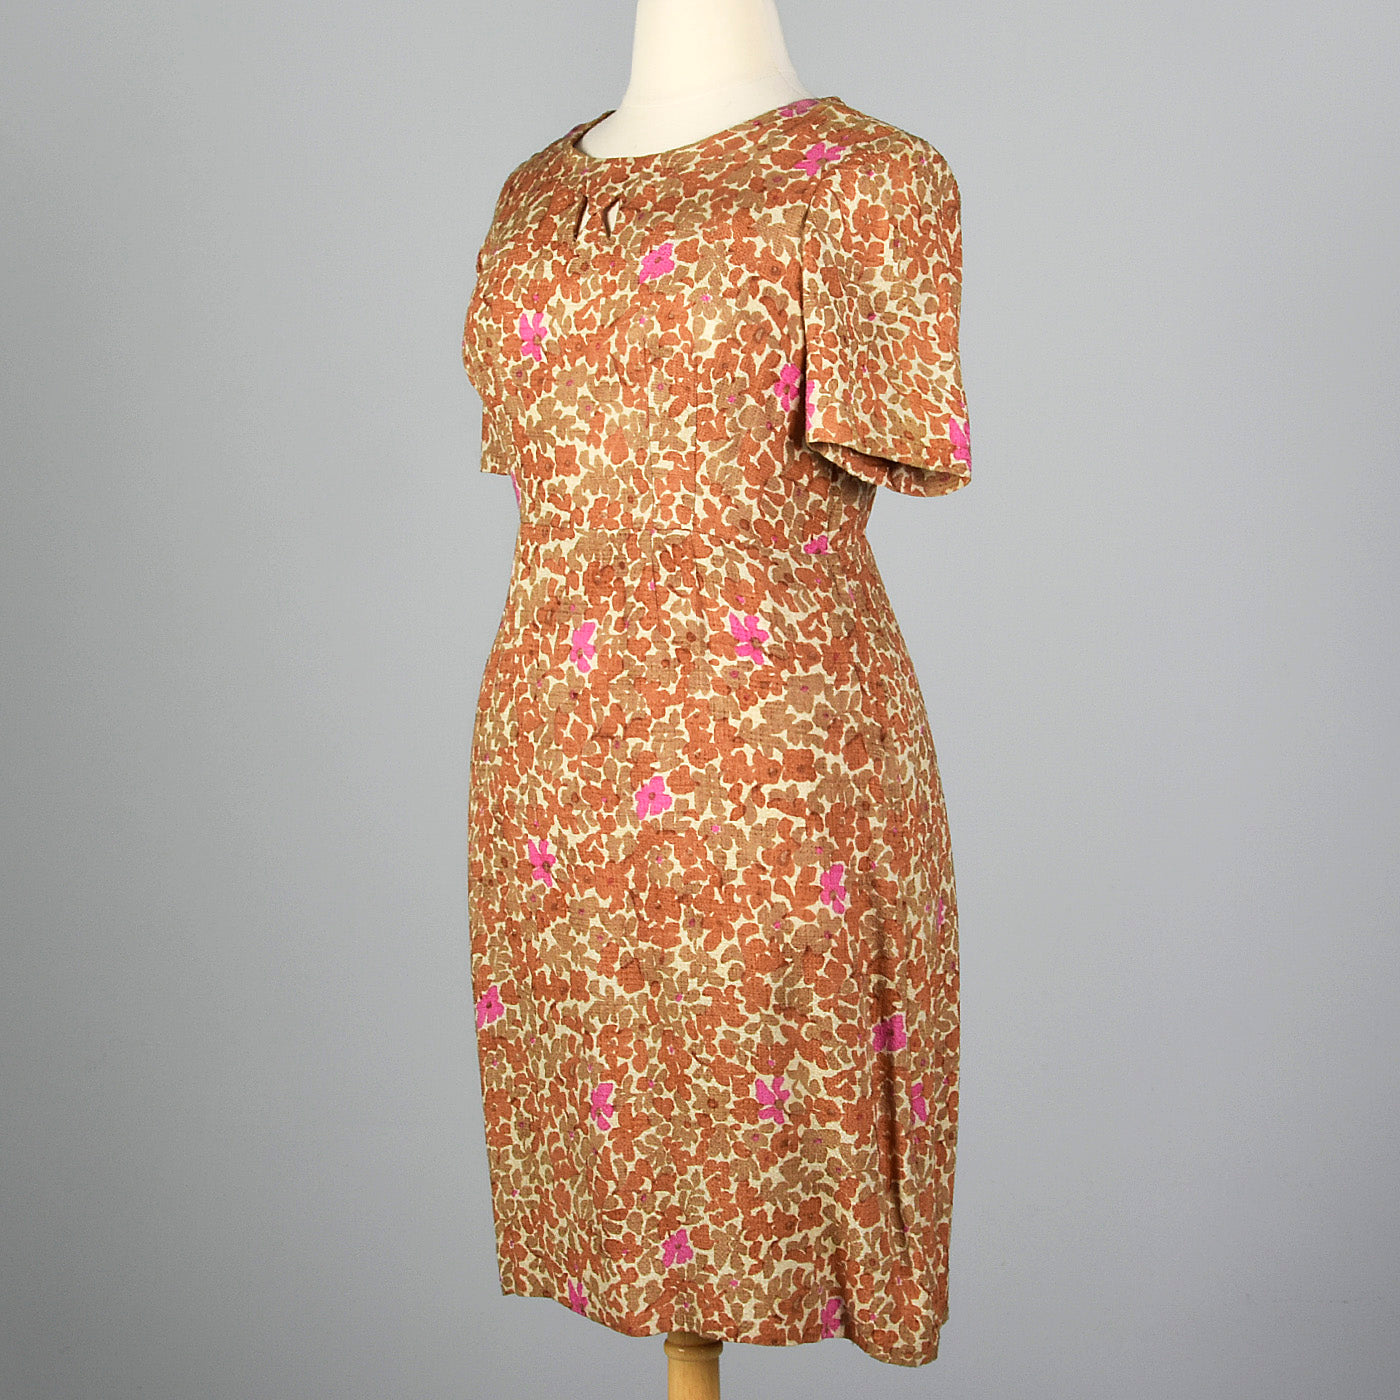 1950s Brown Floral Dress with Cut Out Neck